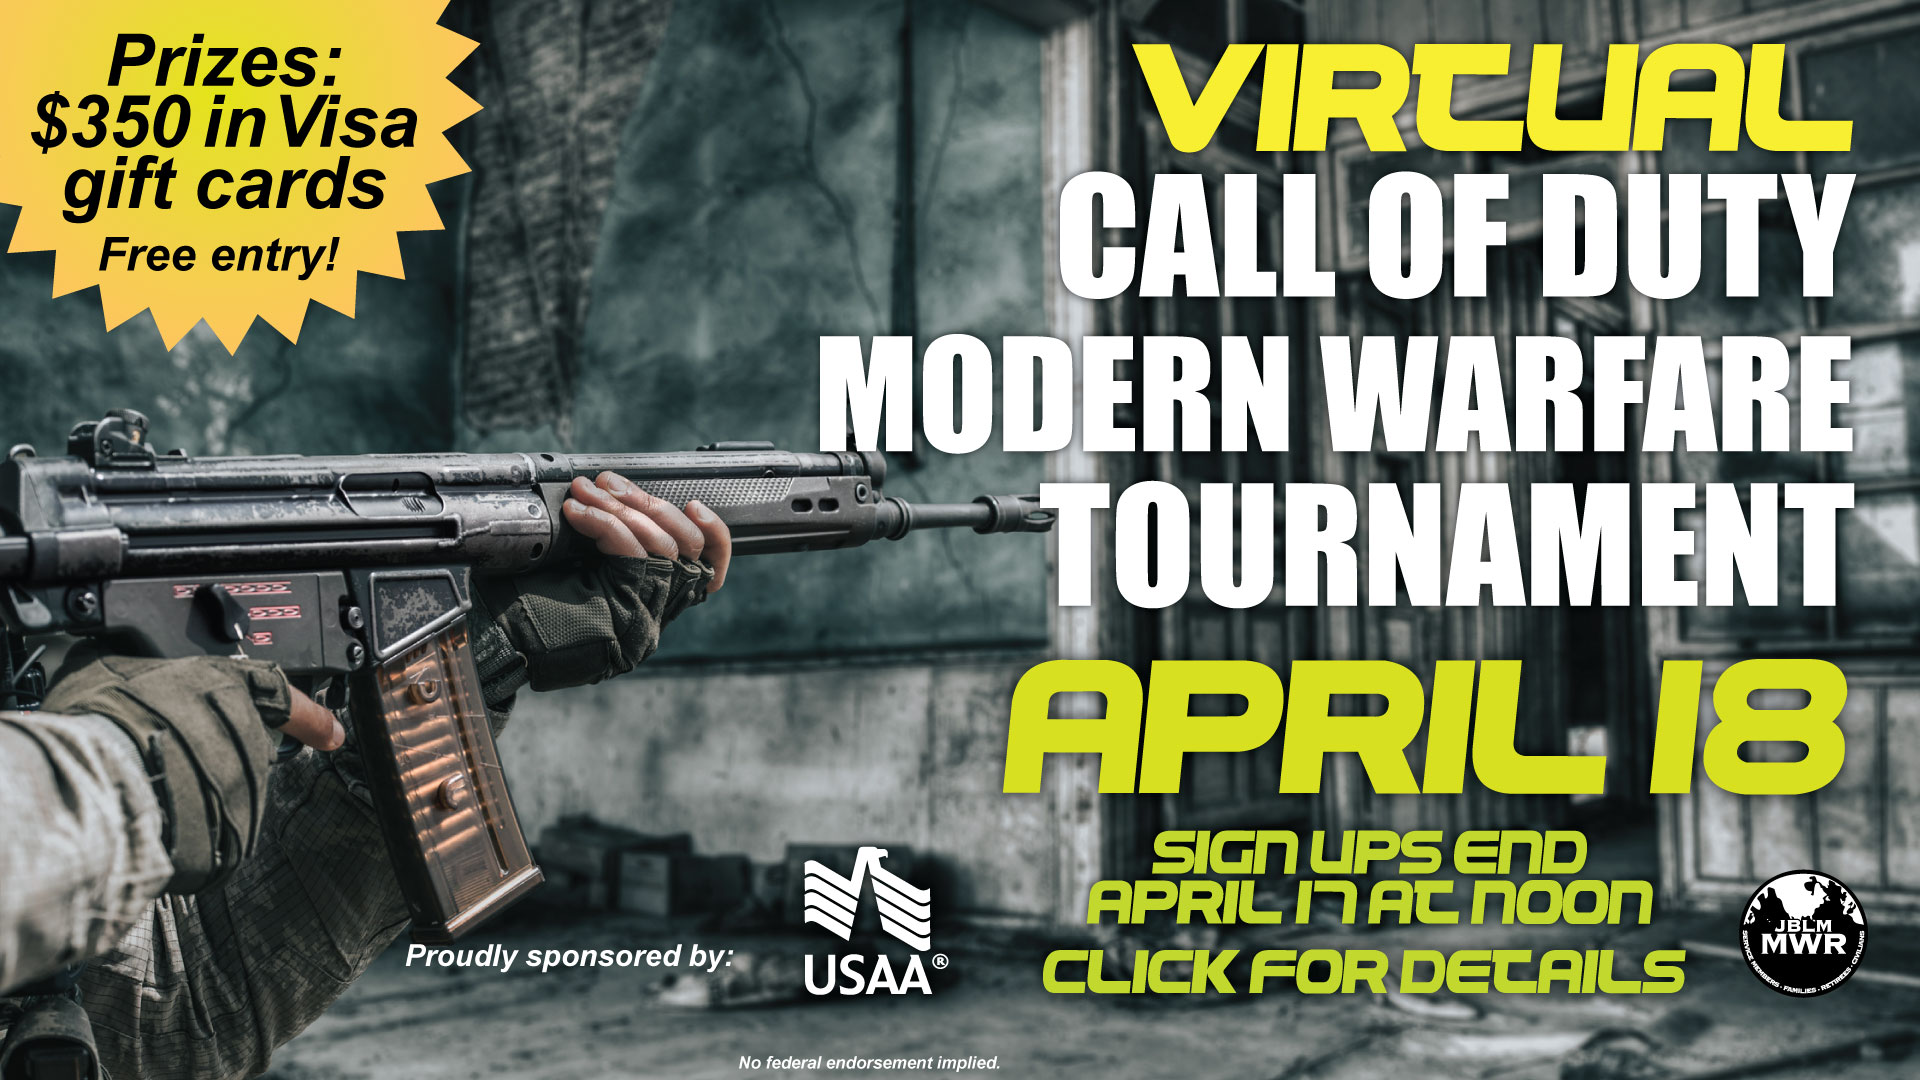 COD Modern Warfare 2v2 Virtual Tournament